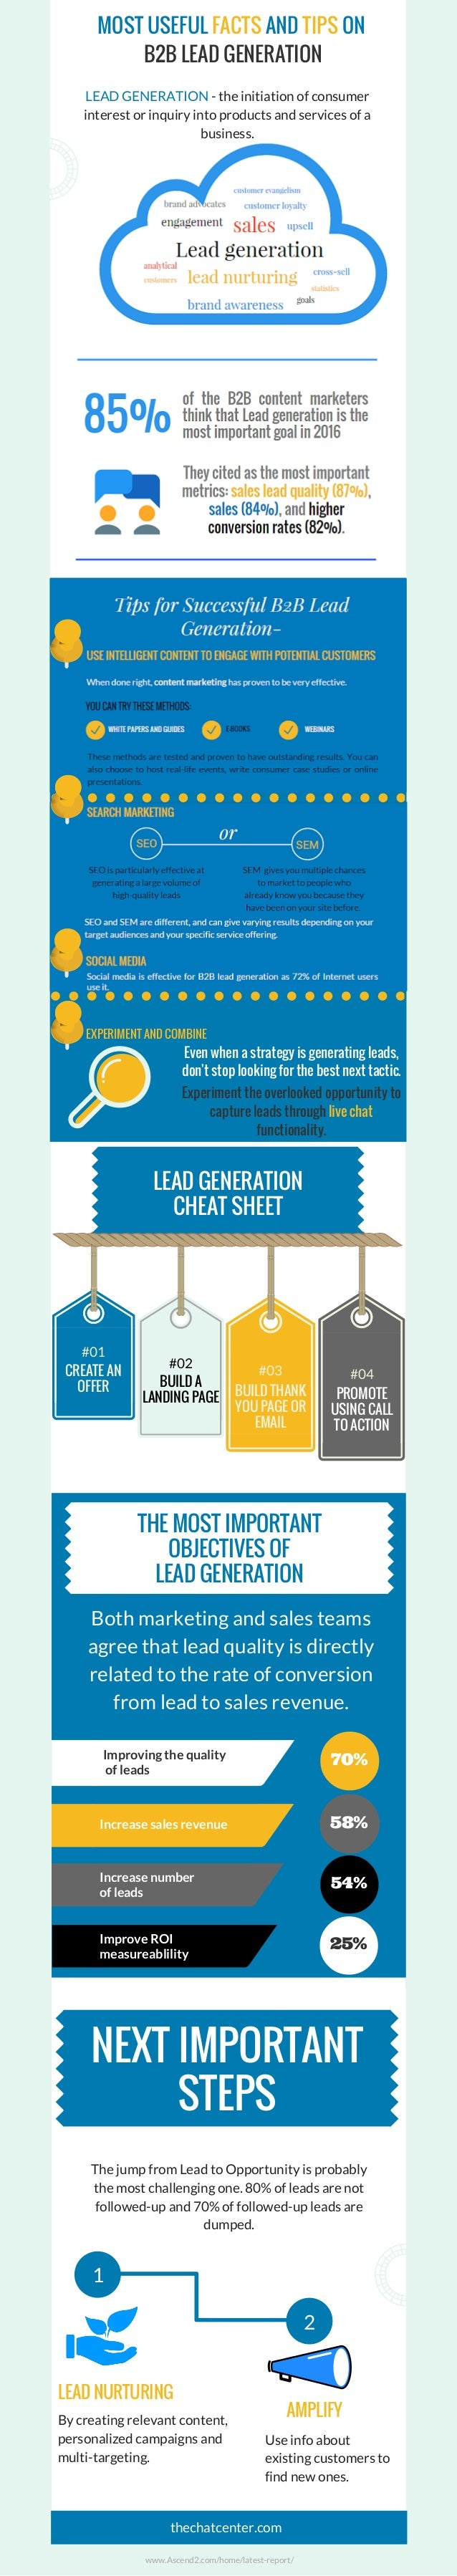 MOST USEFUL FACTS AND TIPS ON B2B LEAD GENERATION LEAD GENERATION - the initiation of consumer interest or inquiry into pr...